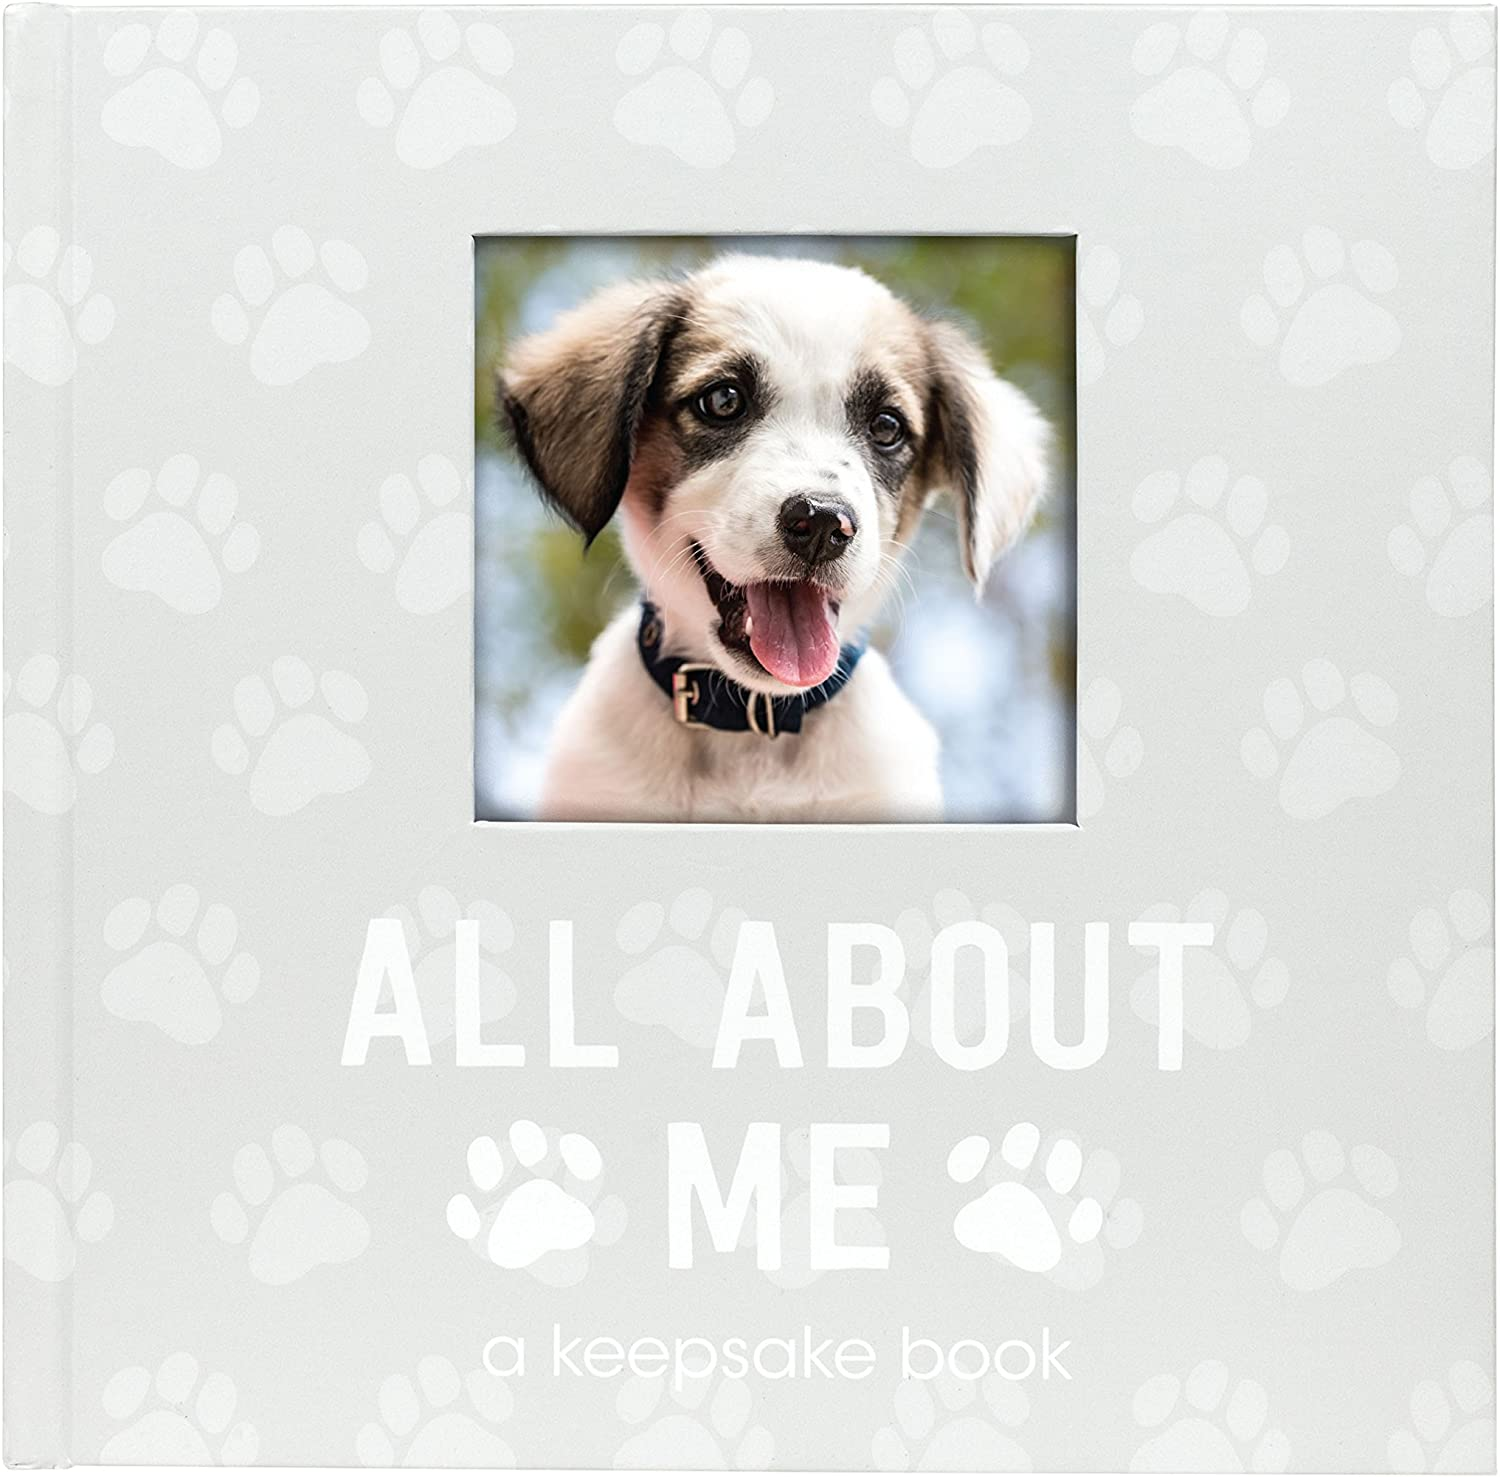 Pearhead Pet Milestone Keepsake, Paw Print Design, Dog Owner Gifts, Cherish Every Memory Of Your Pup, Perfect for Dog People or New Puppy Pet Owners